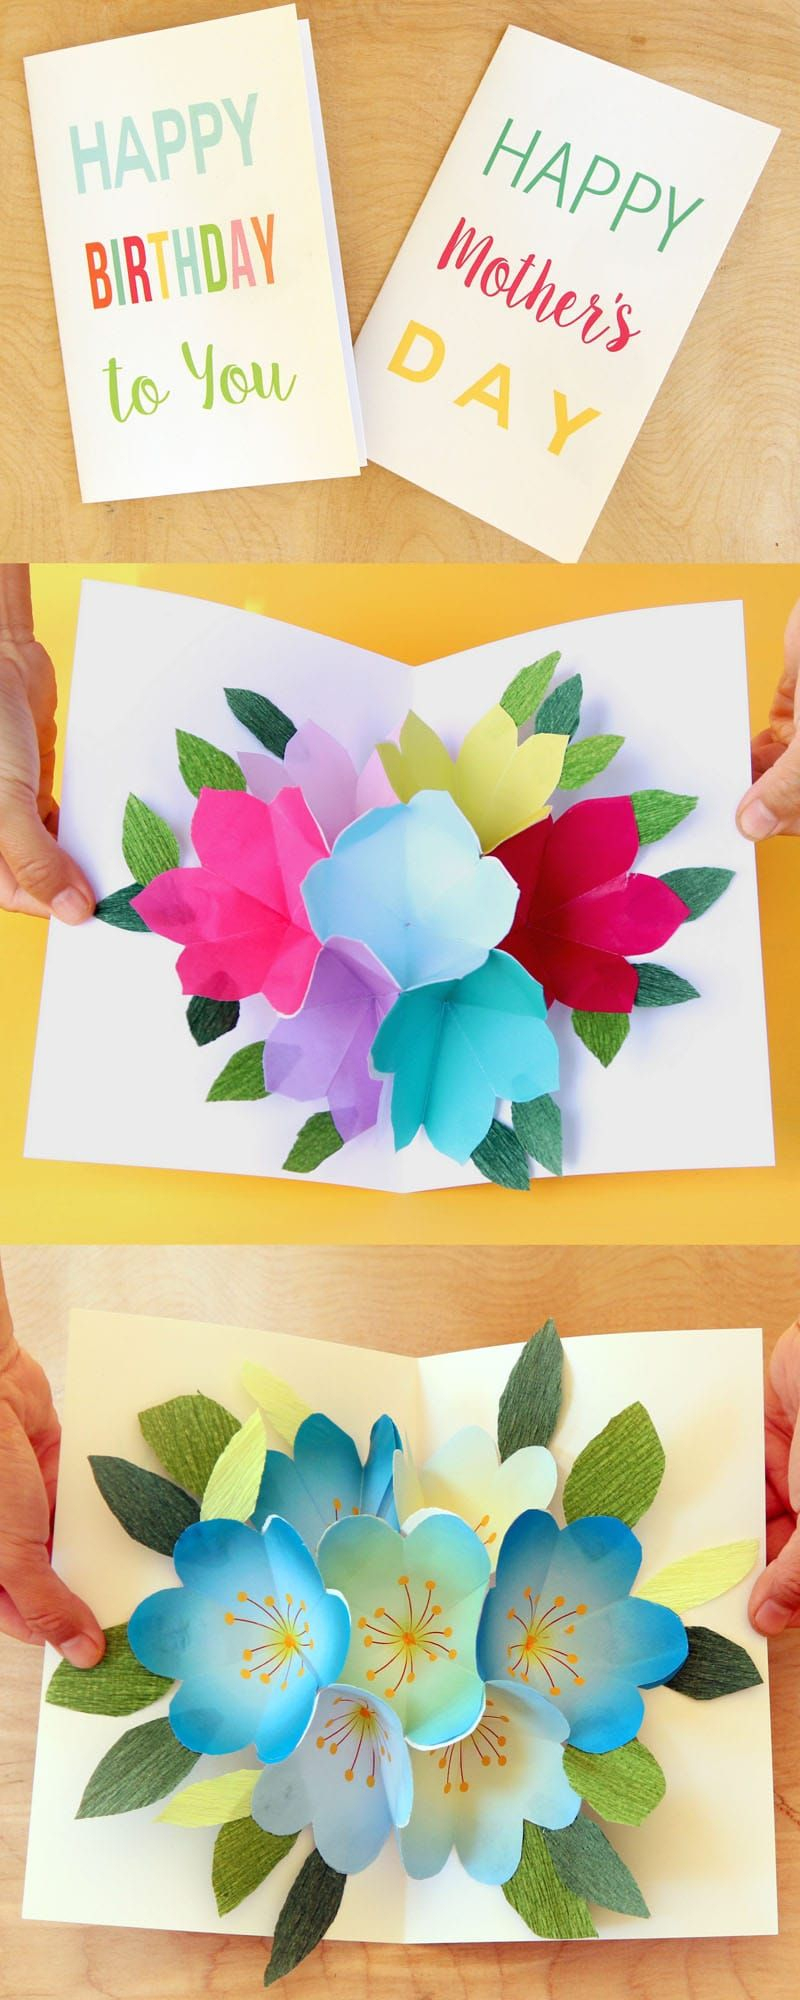 Free Printable Happy Birthday Card With Pop Up Bouquet   Printables - Free Printable Birthday Cards For Her